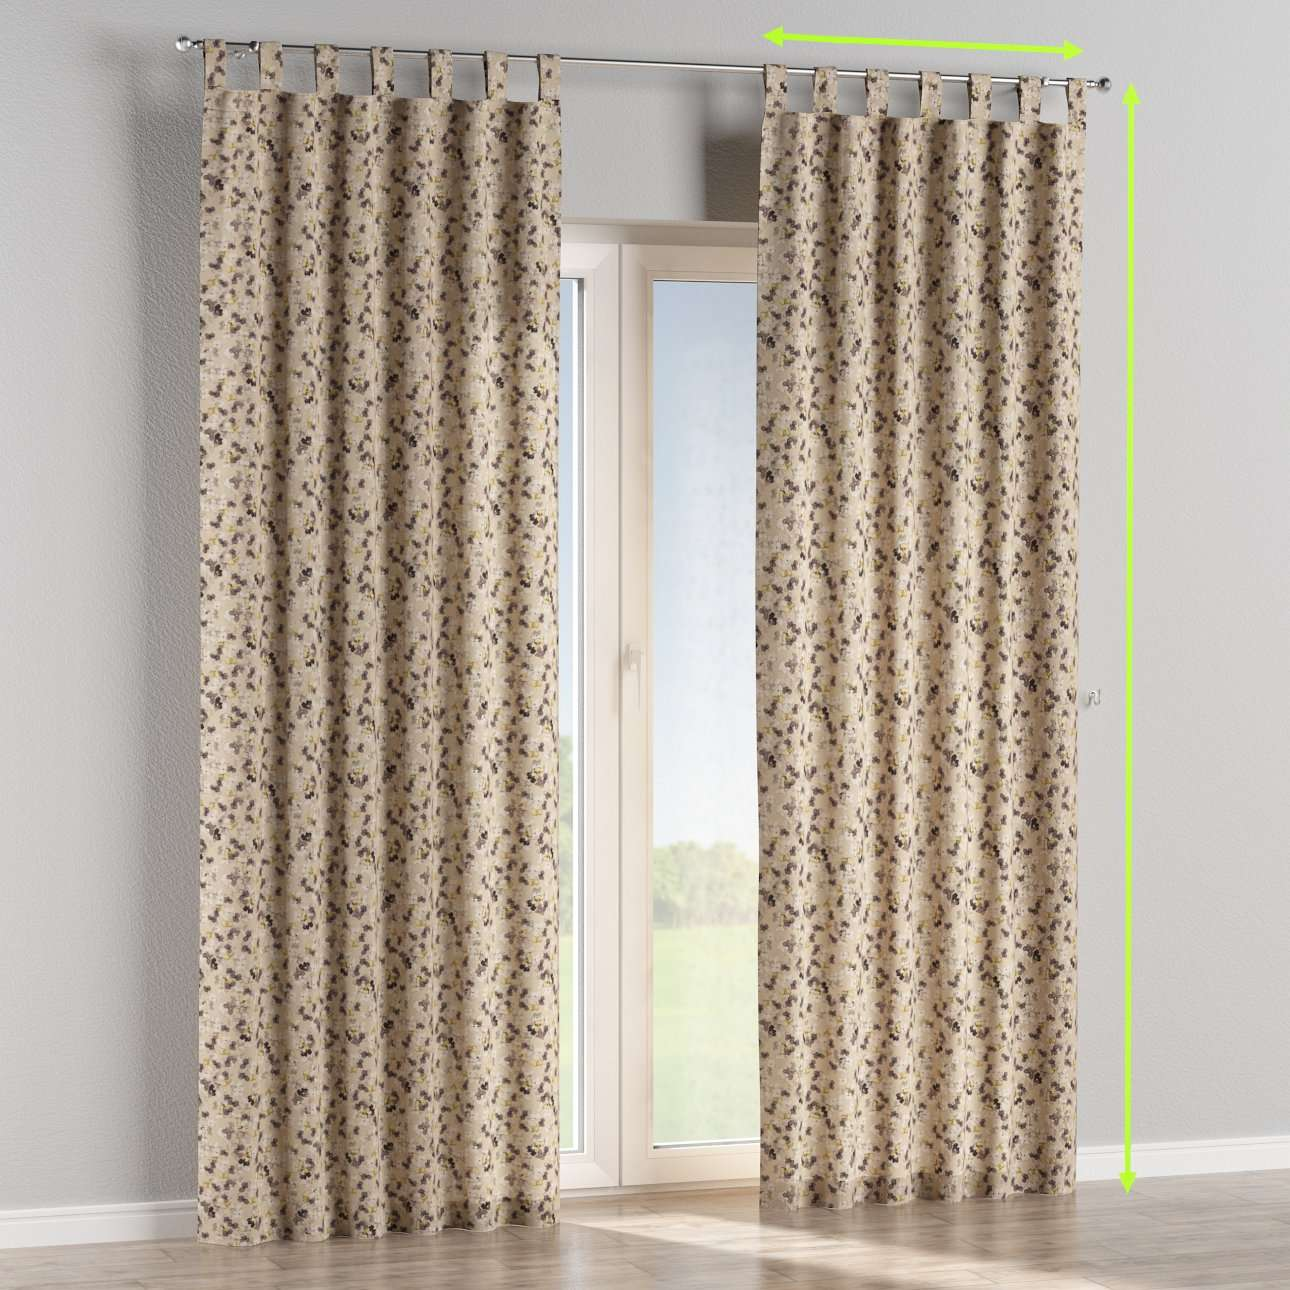 Tab top curtains in collection Londres, fabric: 140-48